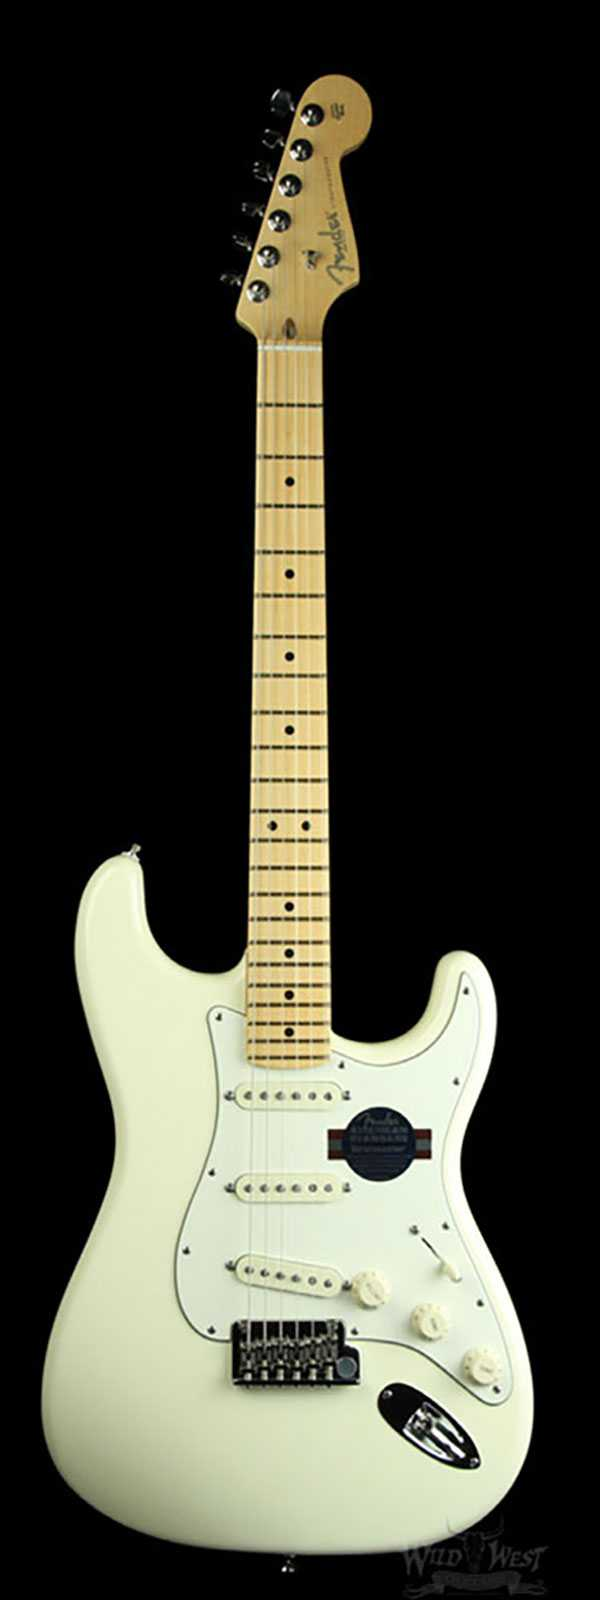 Fender American Standard Stratocaster Olympic White w/ Maple Fingerboard